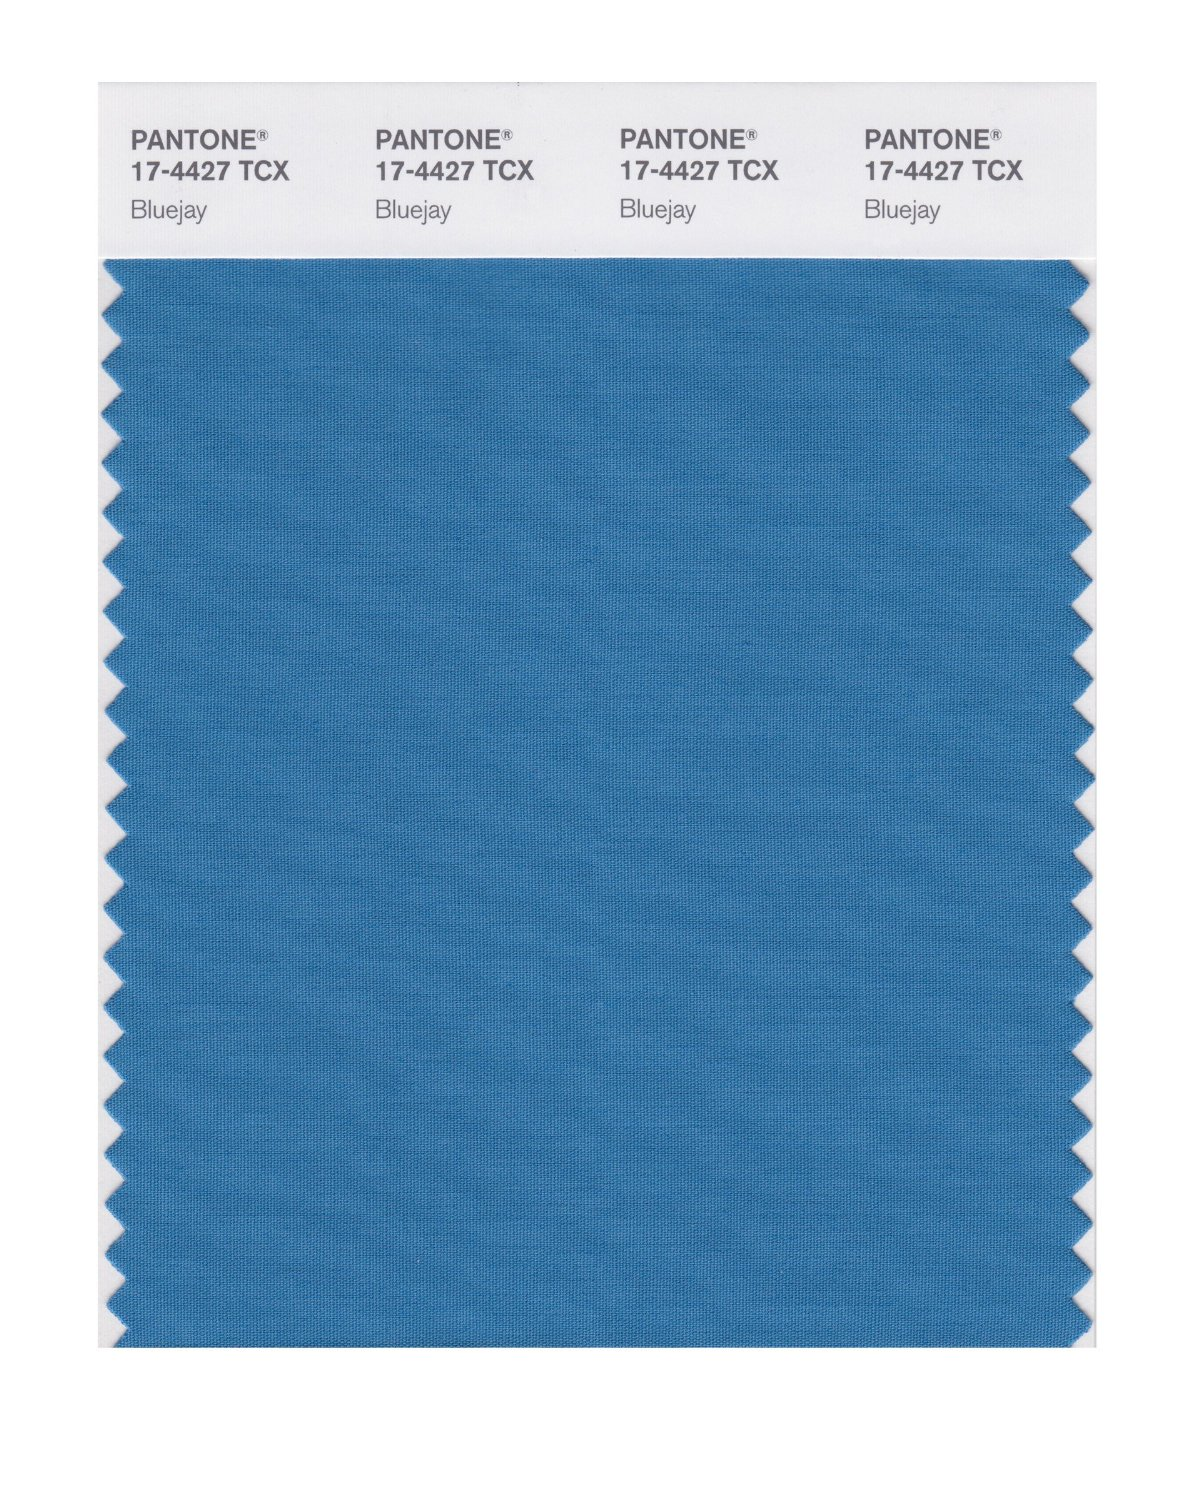 Pantone Smart Swatch 17-4427 Bluejay